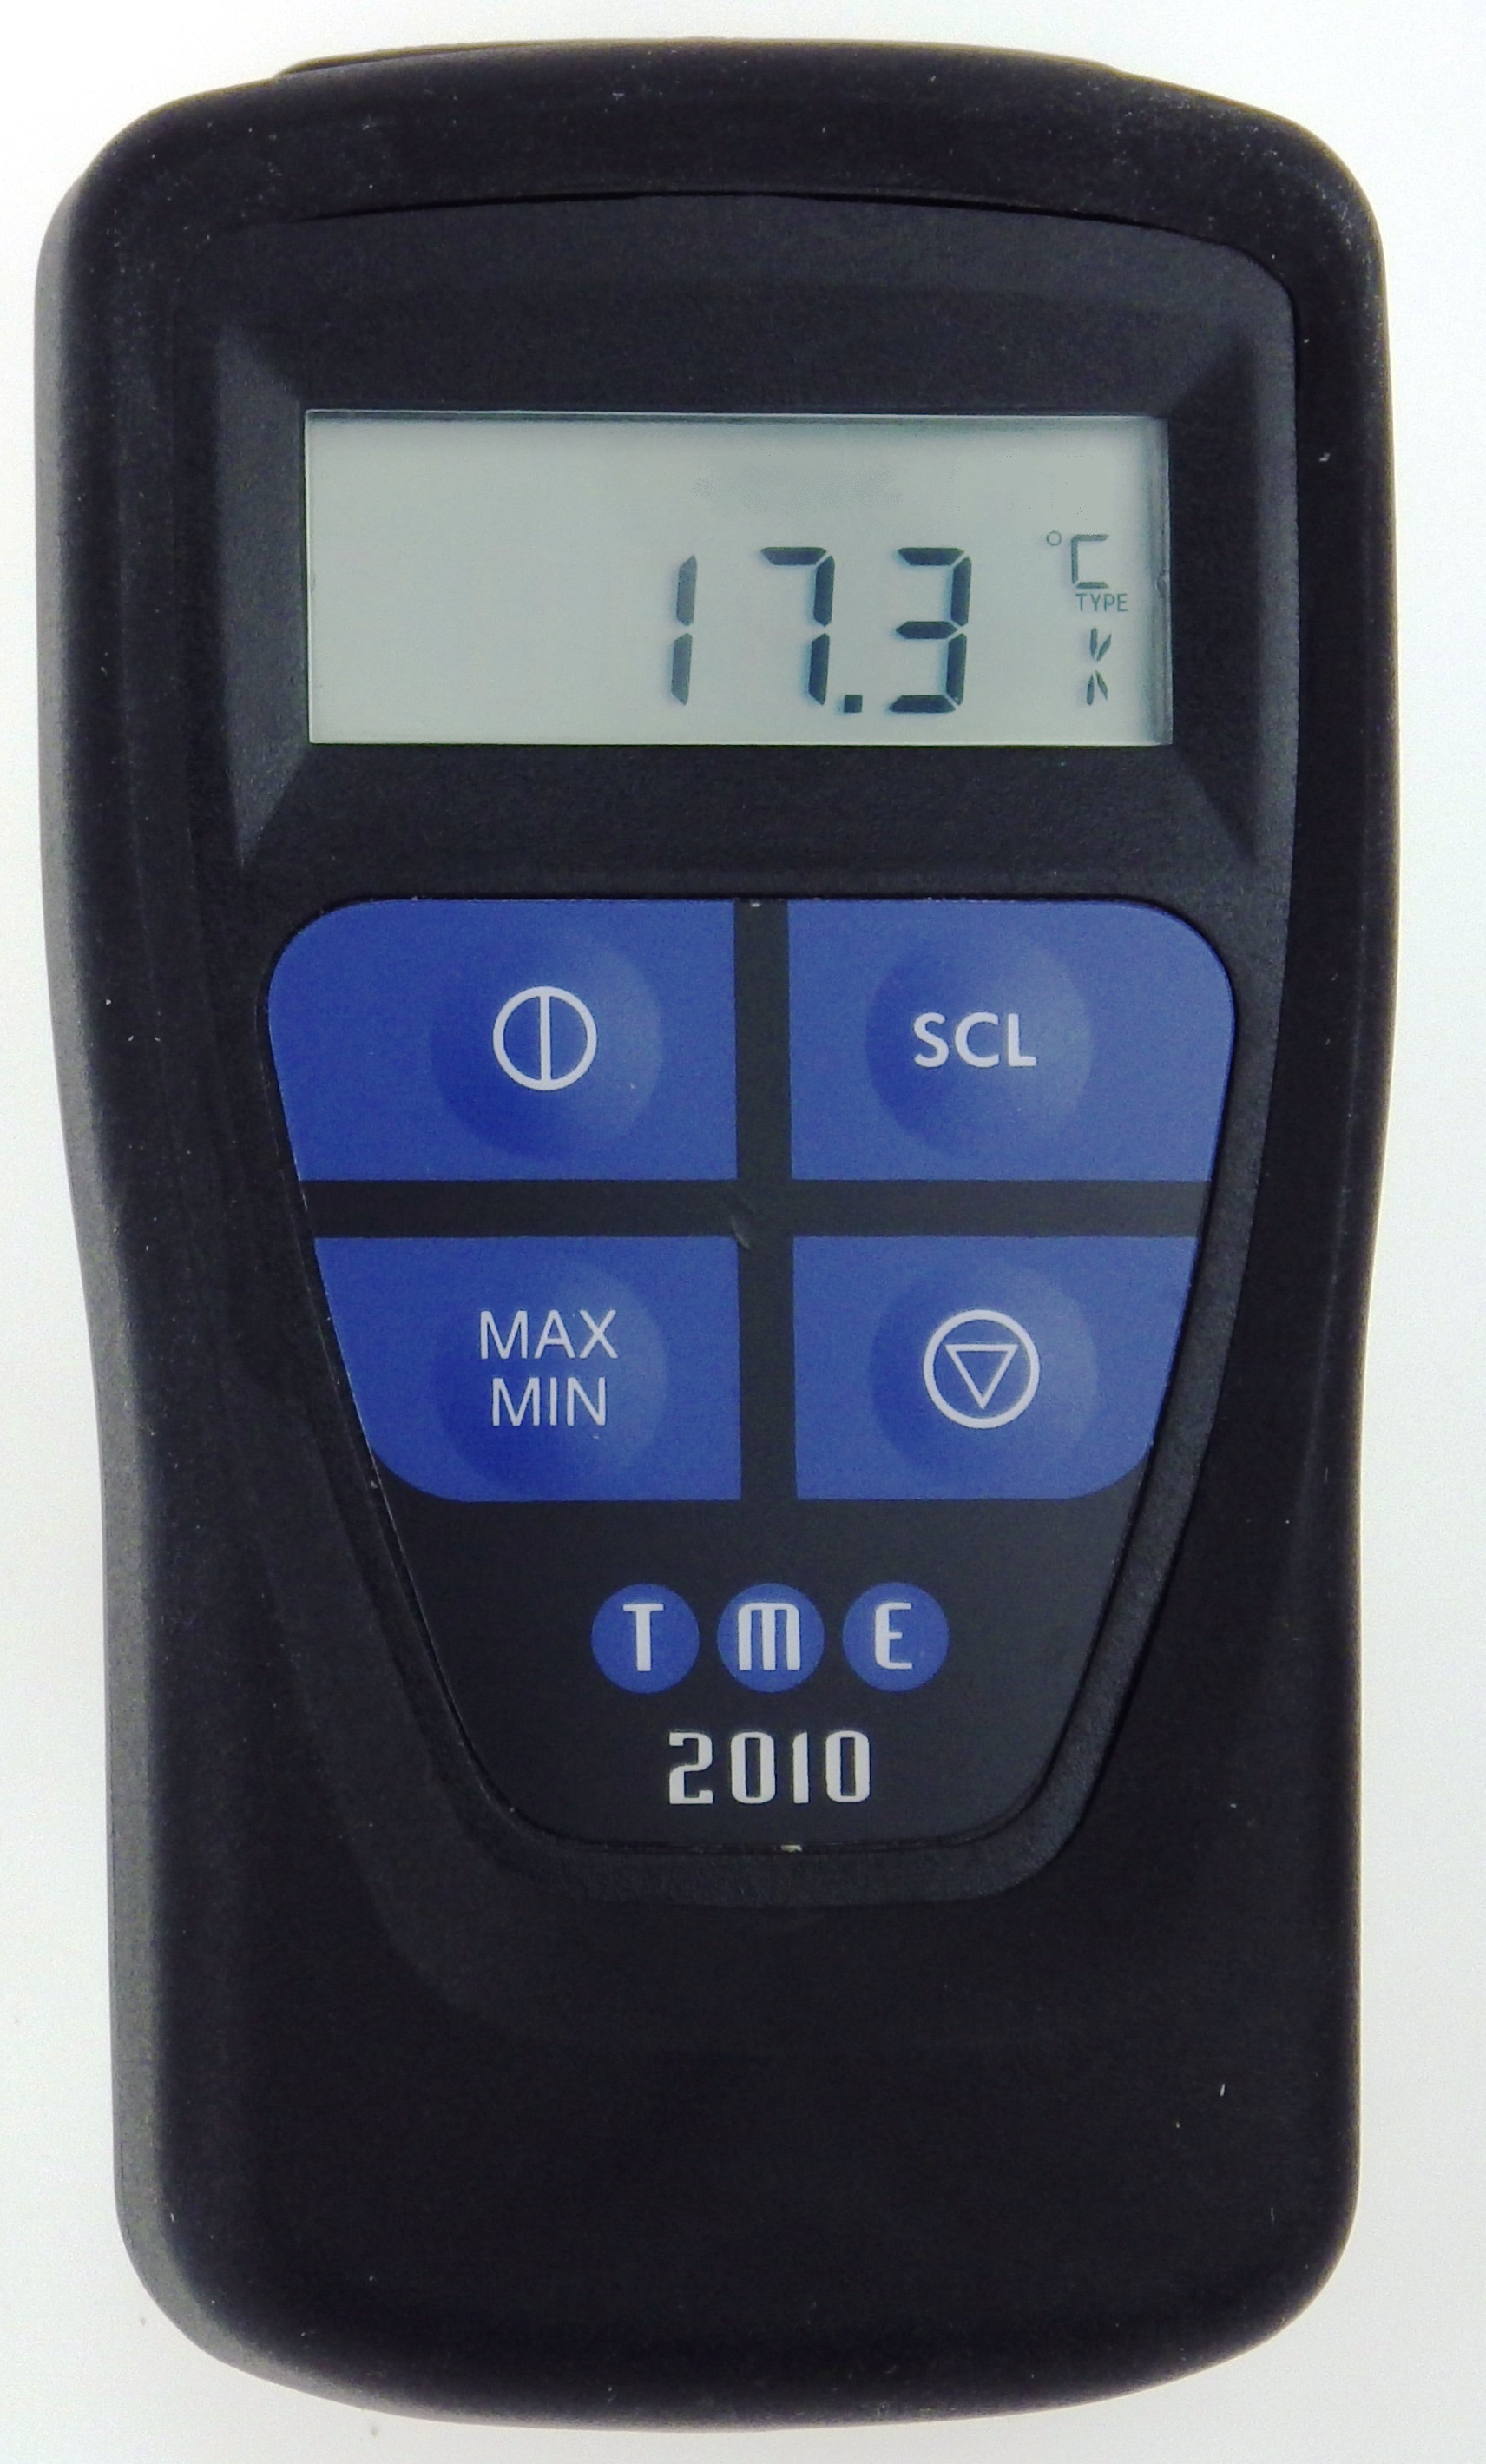 This Waterproof, Self-Calibrating Thermometer has Max/Min functions, Max/Min/Hold measurement, hold function and Dual Di